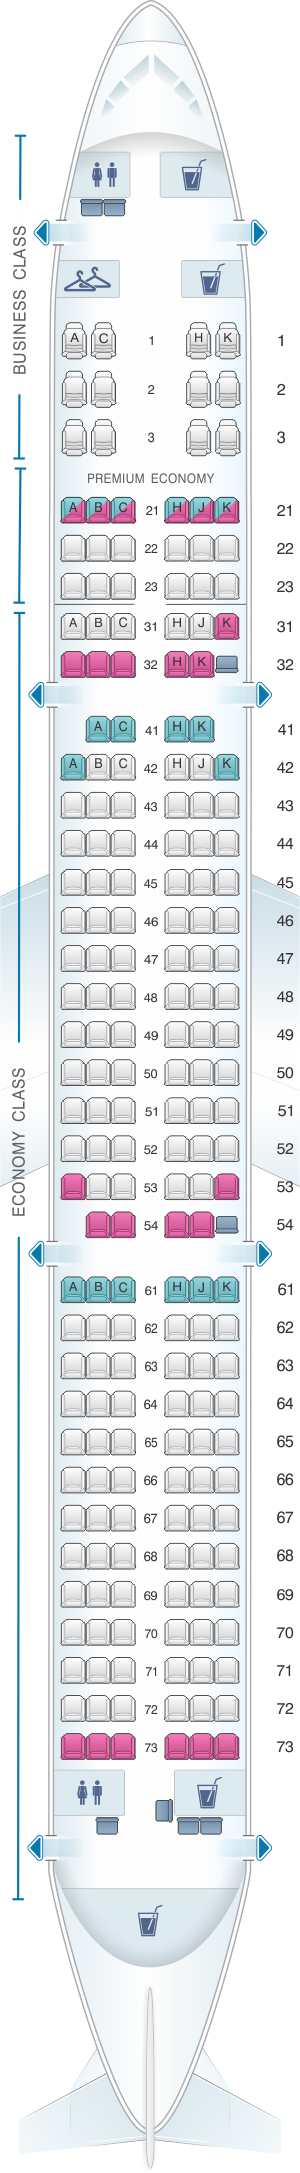 Seat map for Philippine Airlines Airbus A321 200ceo